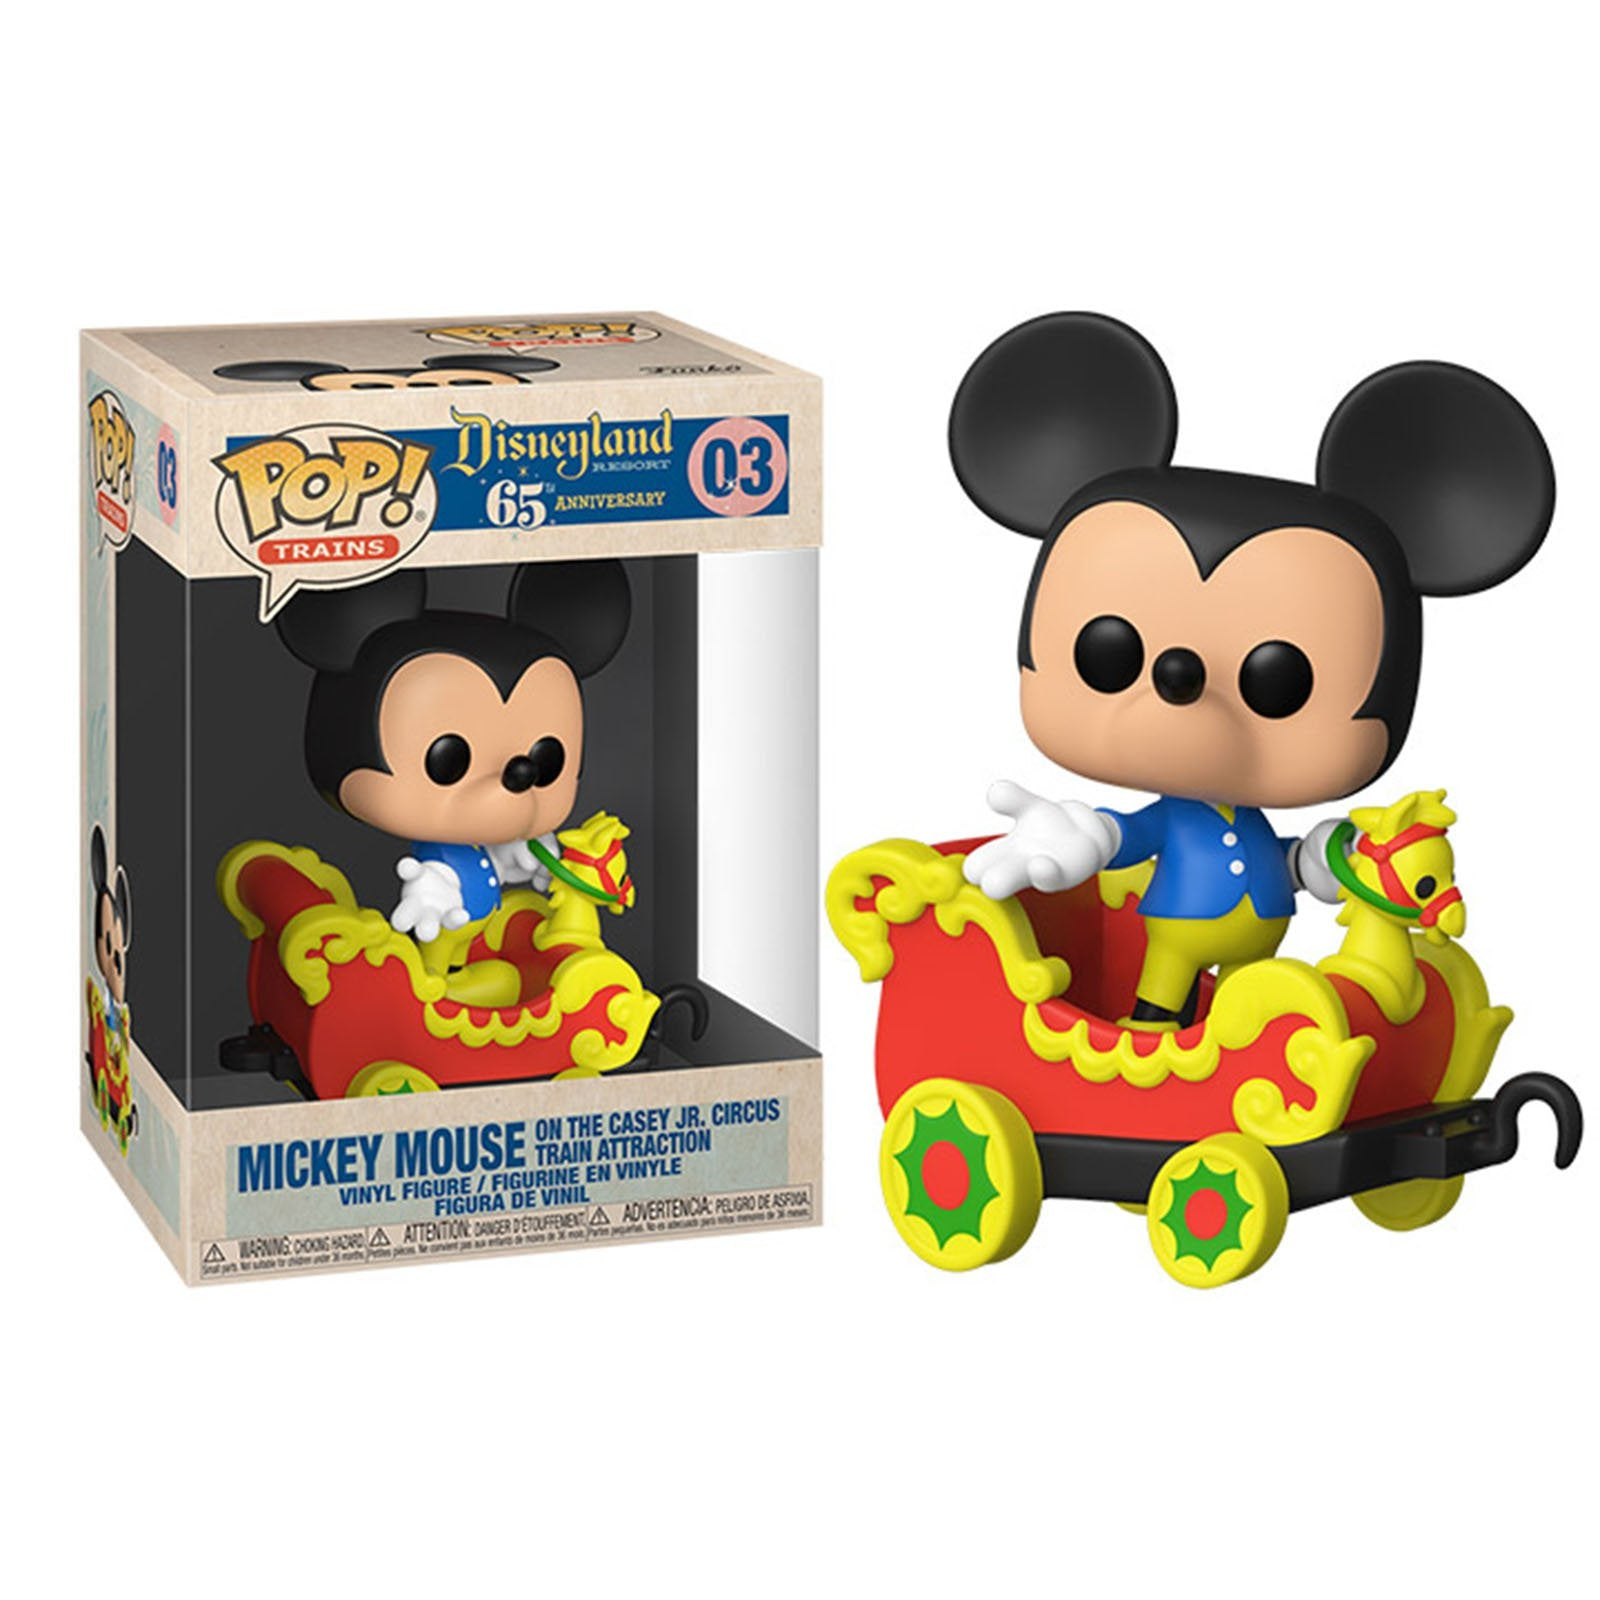 Disney 65th Anniversary Pop! Vinyl Trains Casey Jr Mickey [03] - Fugitive Toys